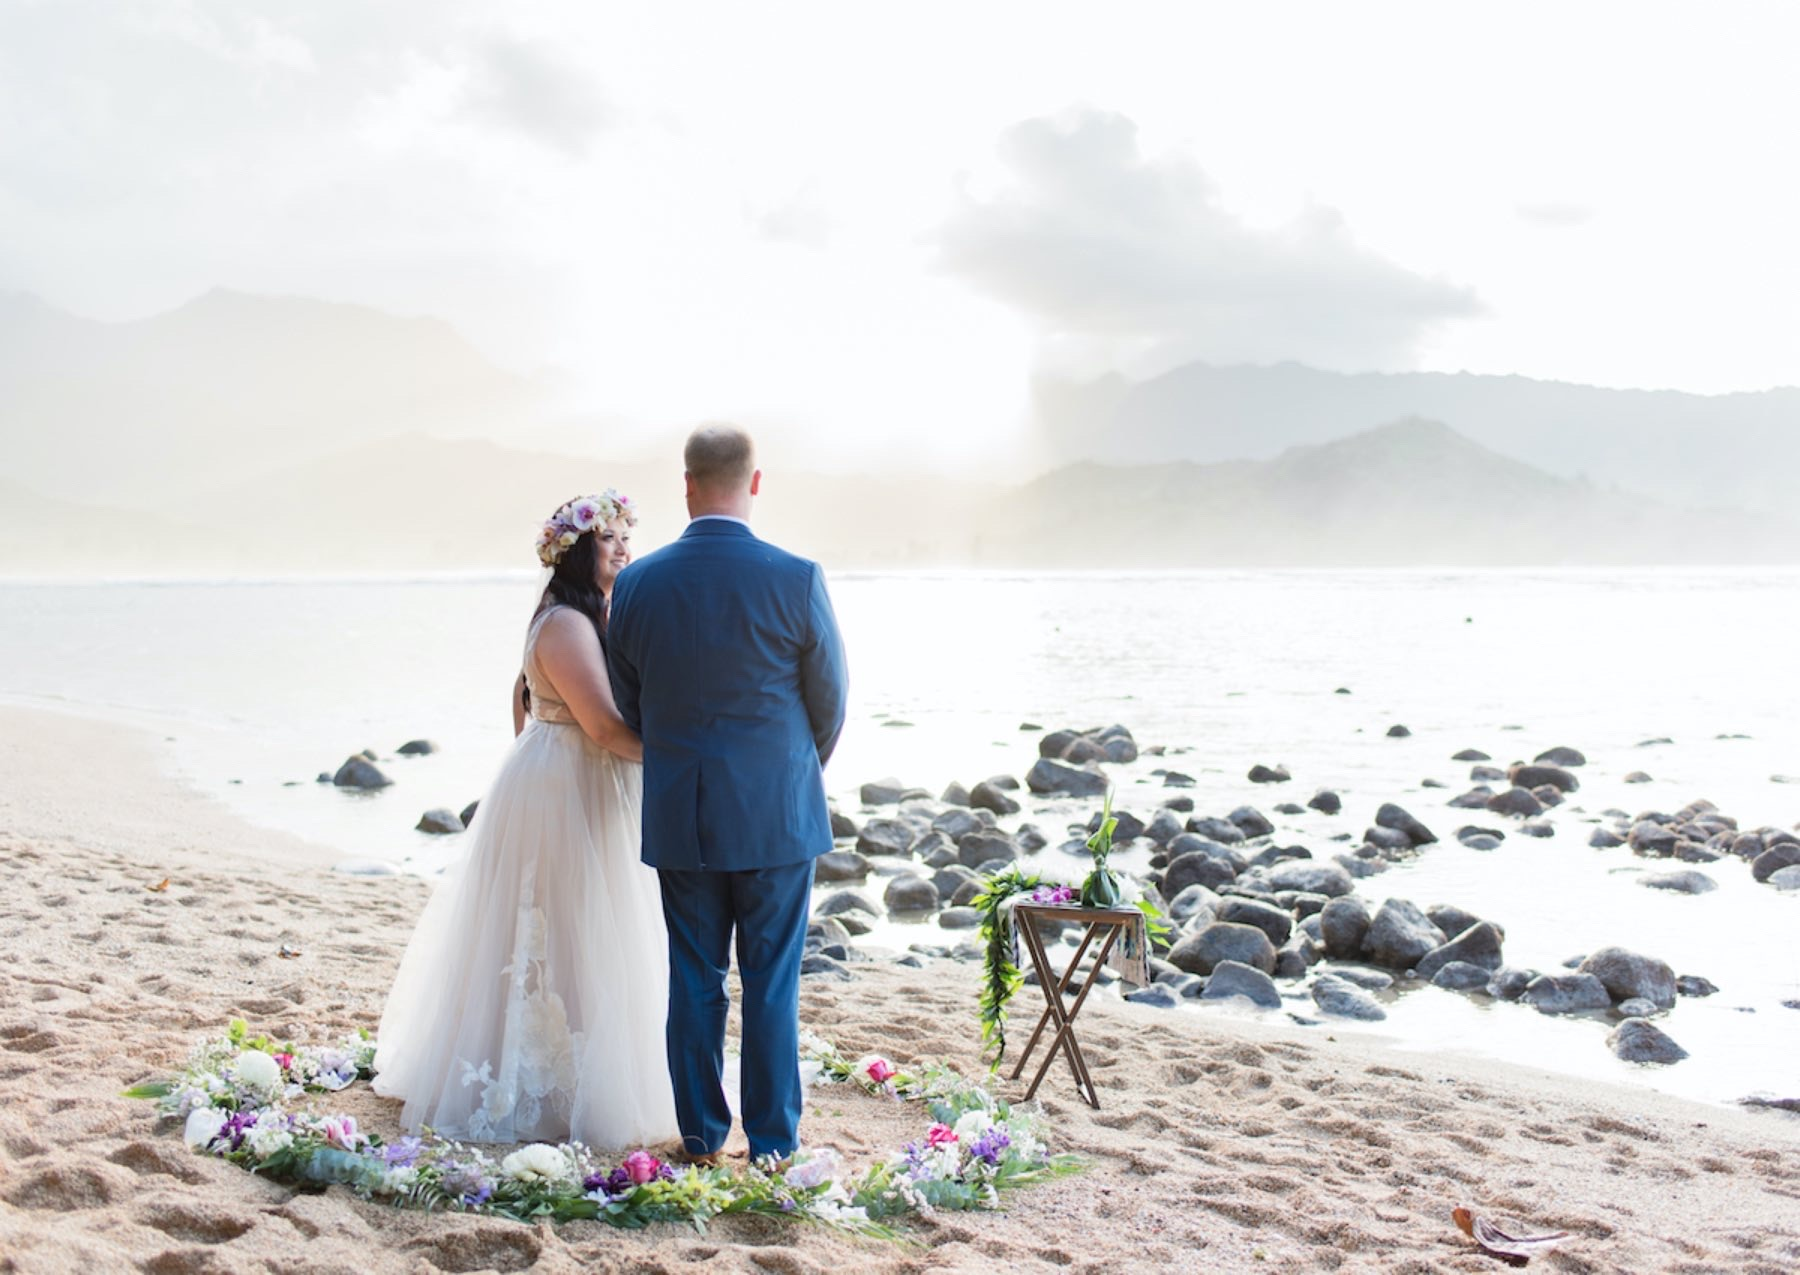 Molly & Chris eloping on the beach.